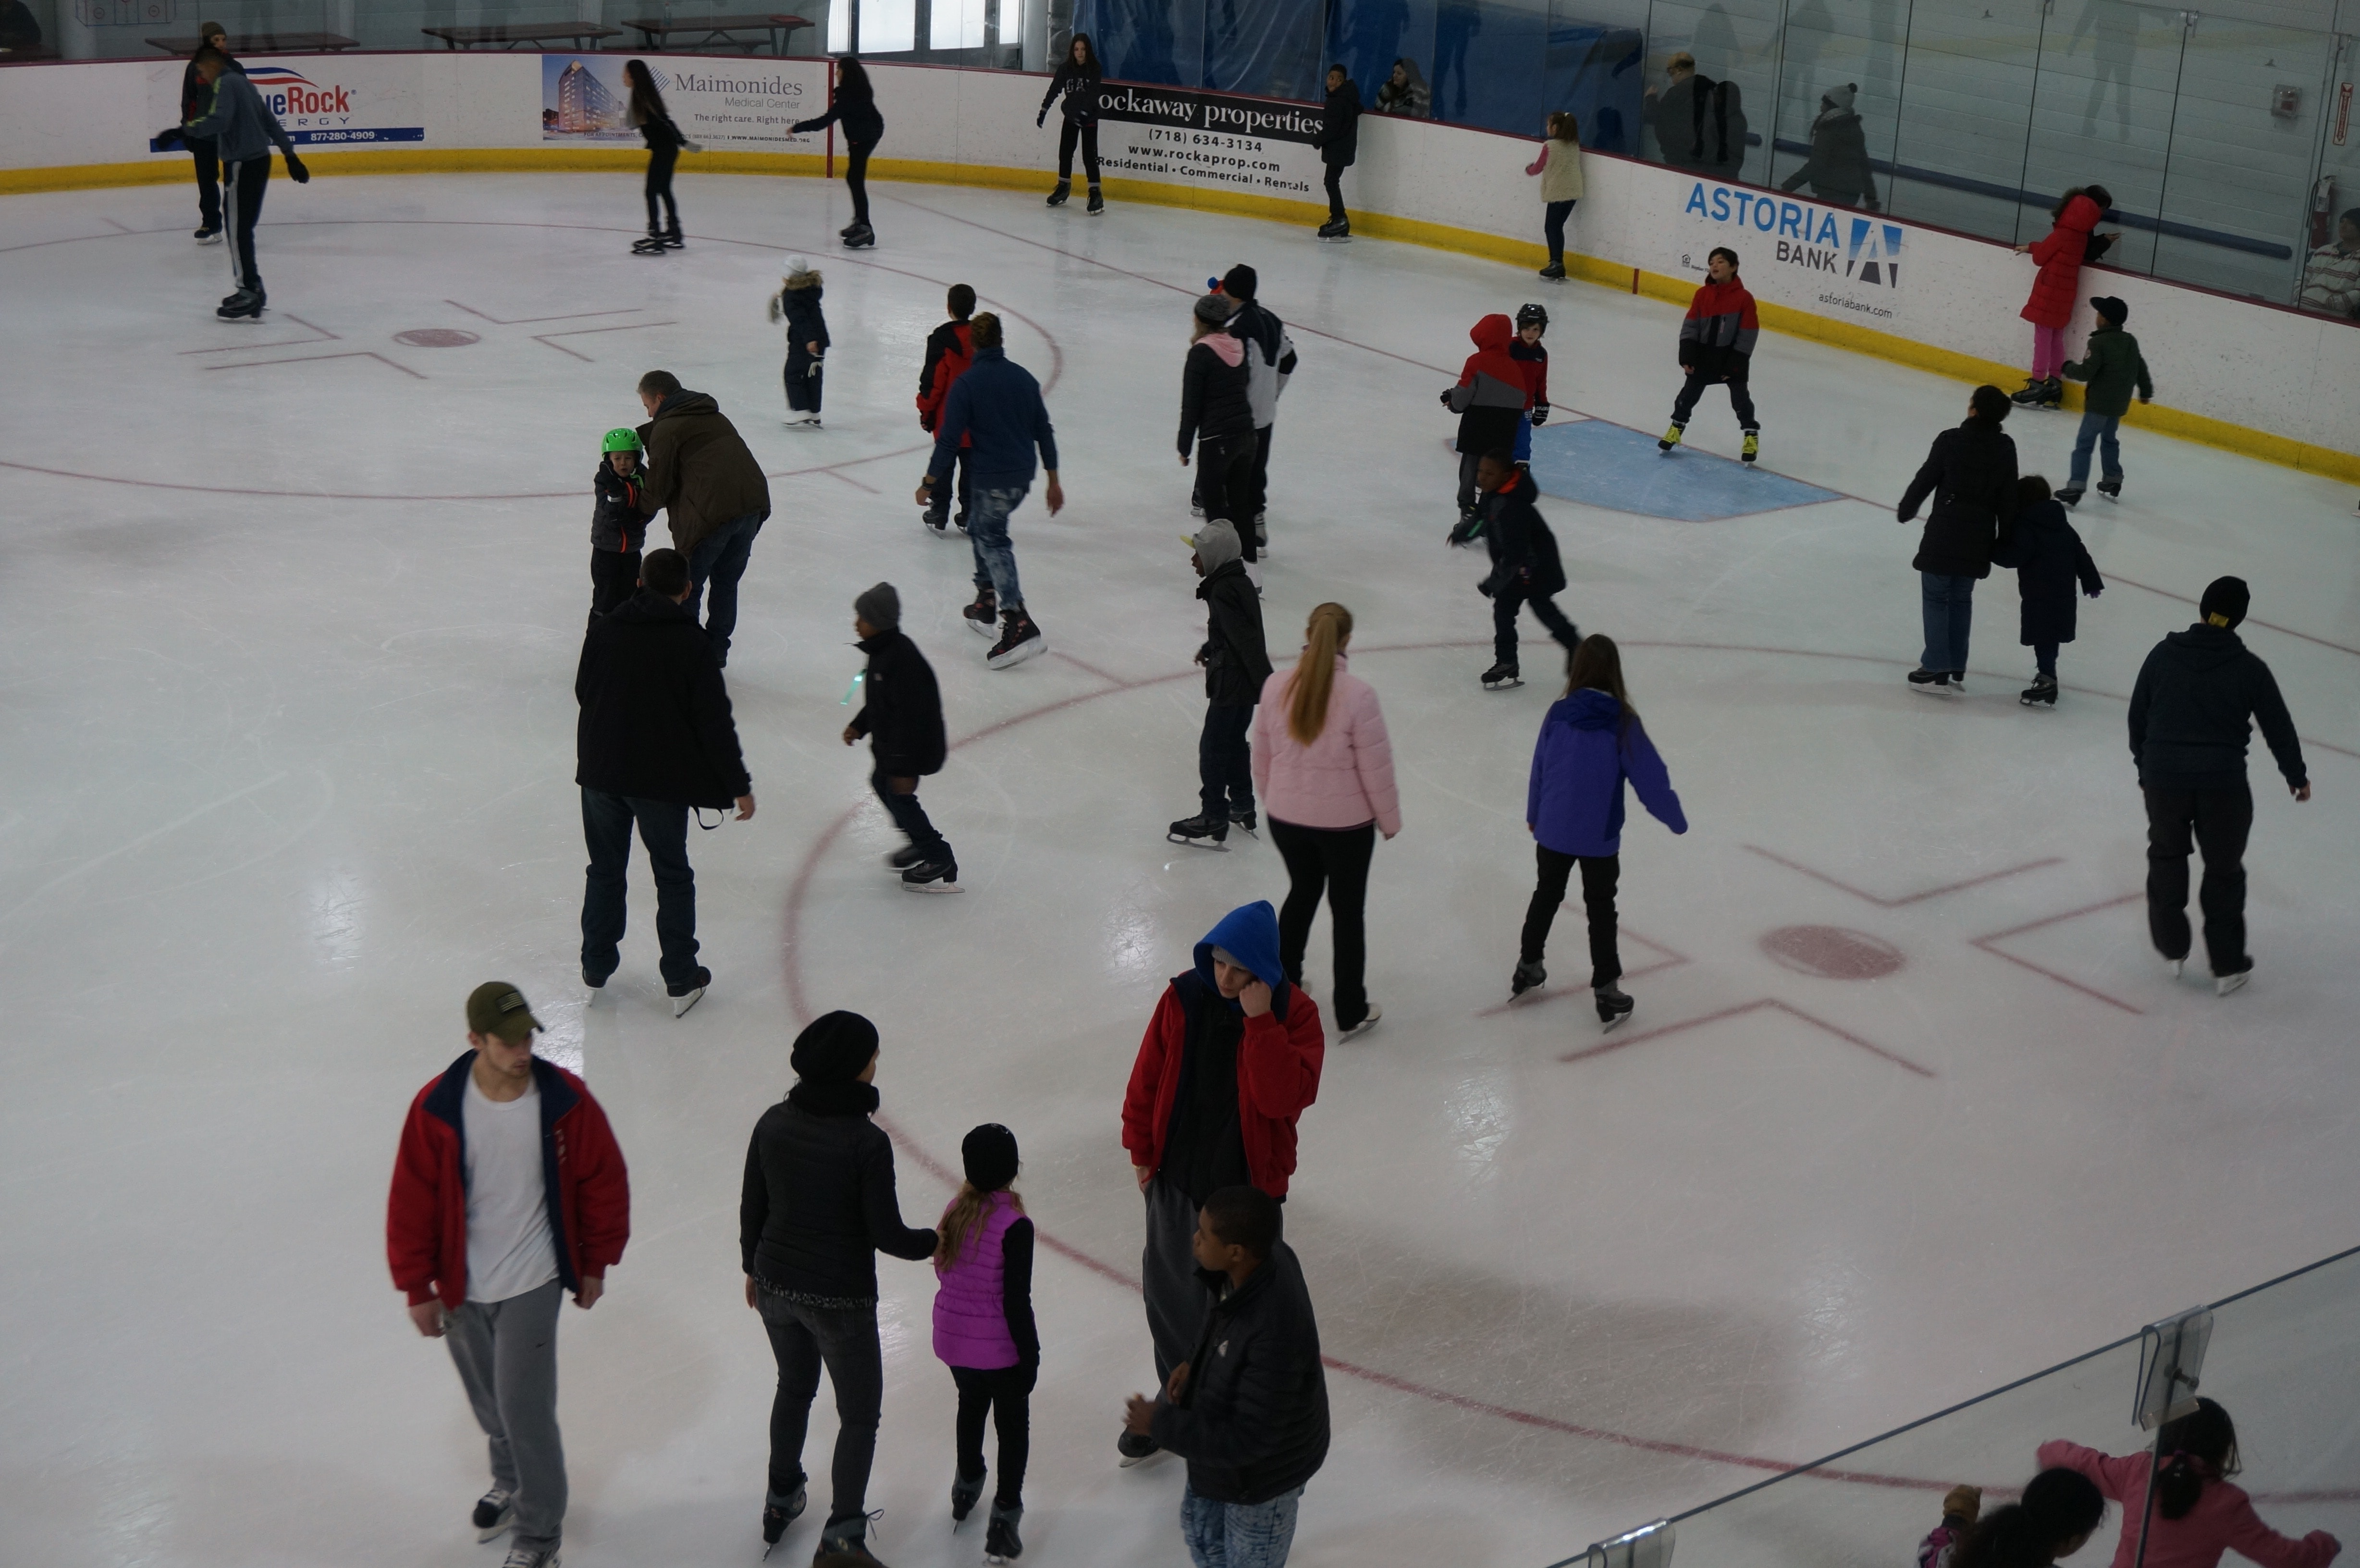 Ice skating near me